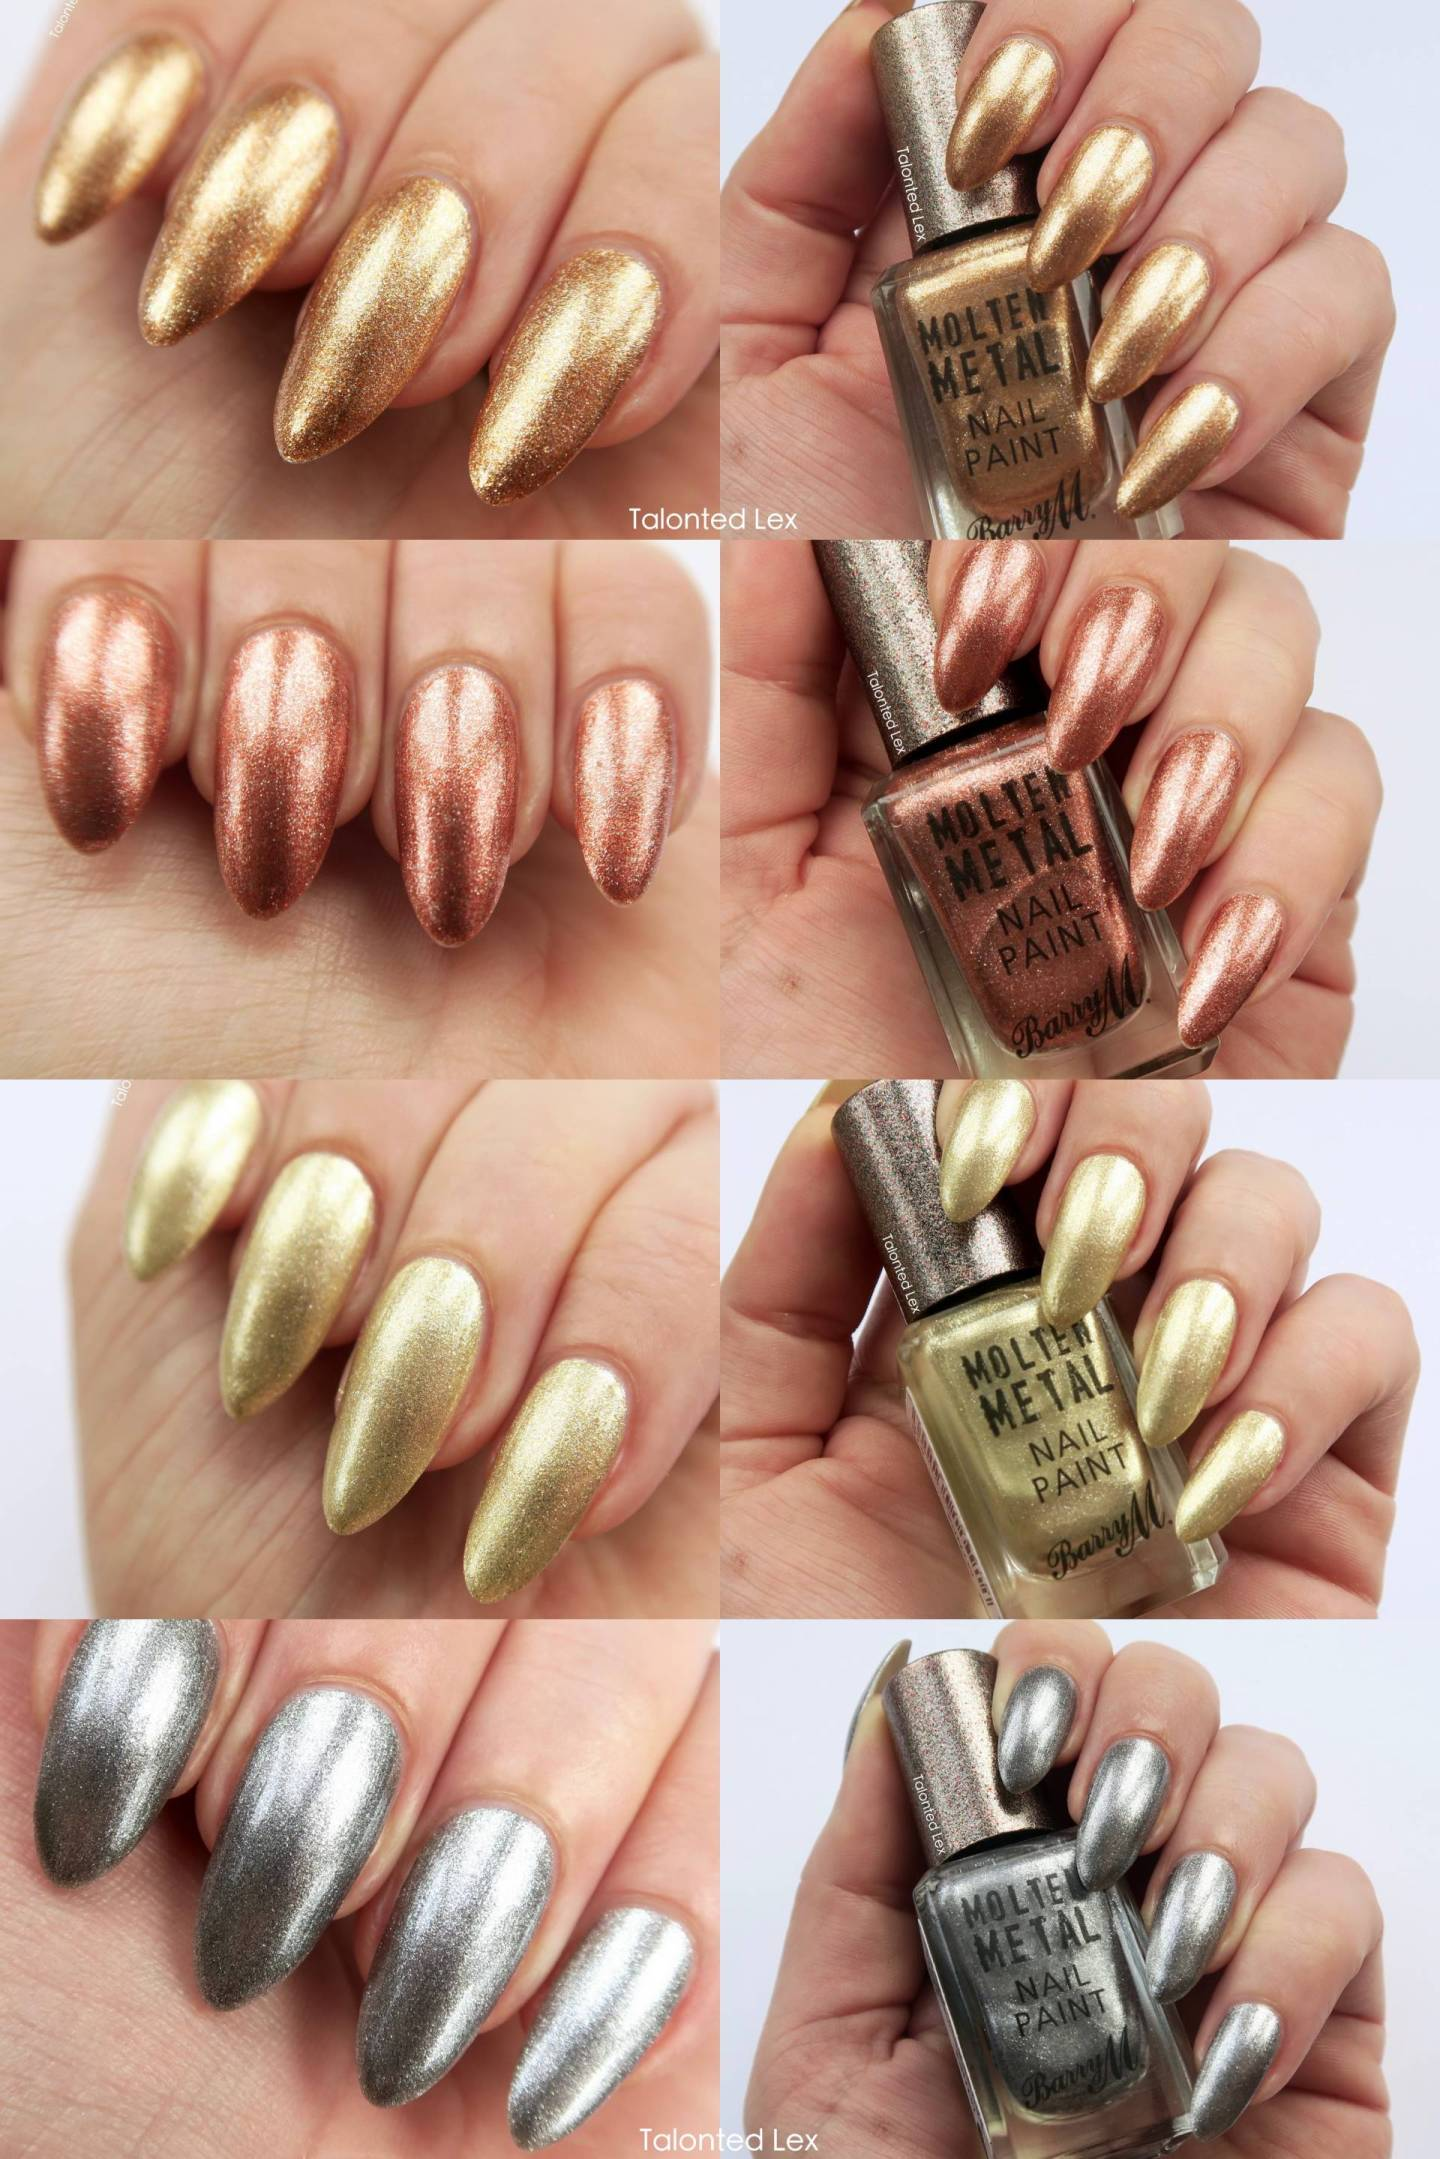 Barry M Molten Metals Review - Talonted Lex